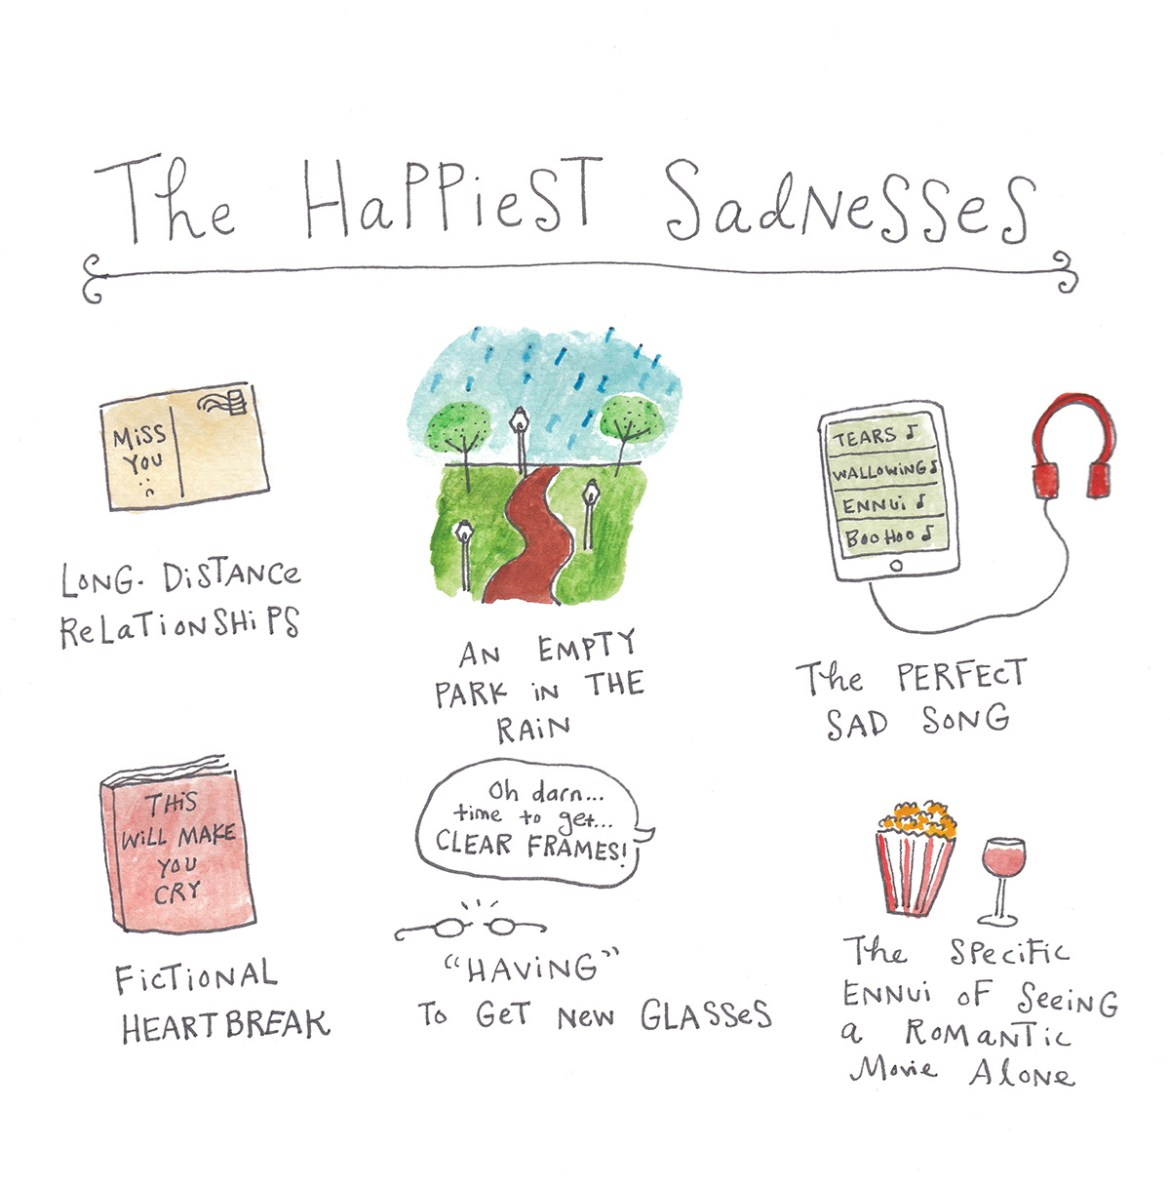 The Happiest Sadnesses